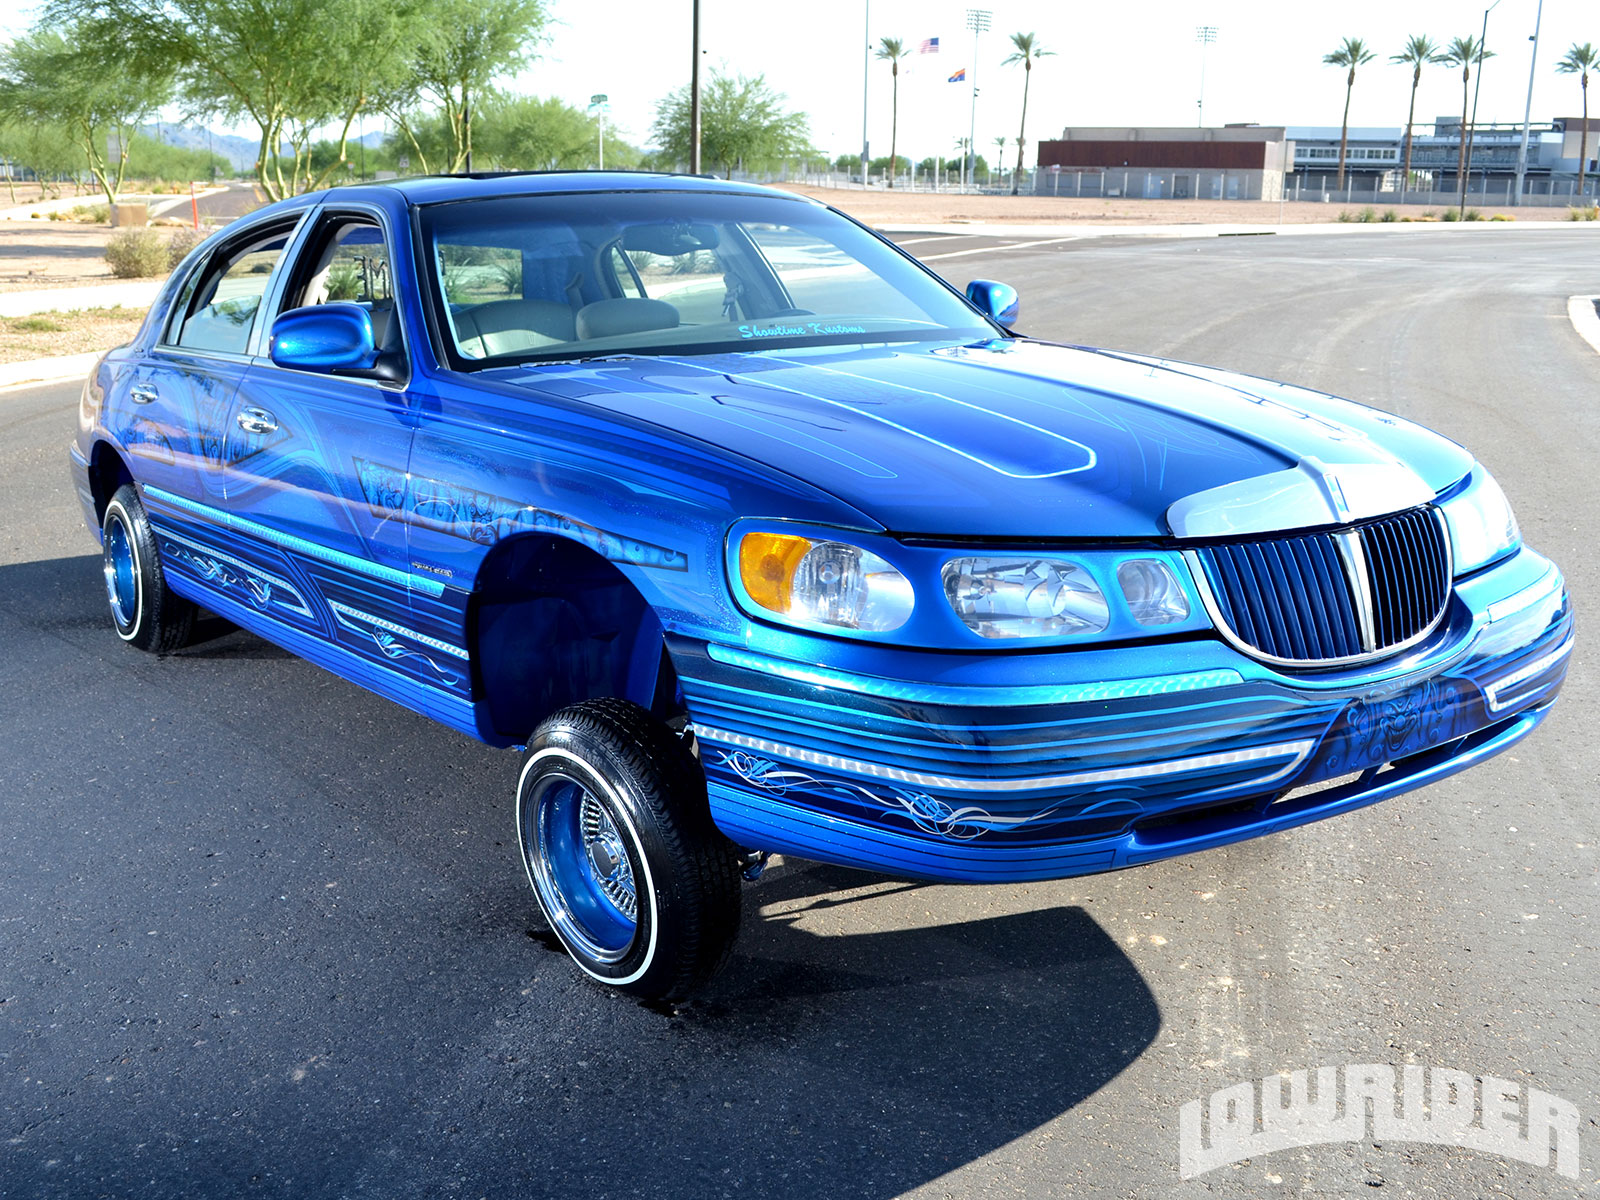 l cargurus overview cars town signature pic car lincoln